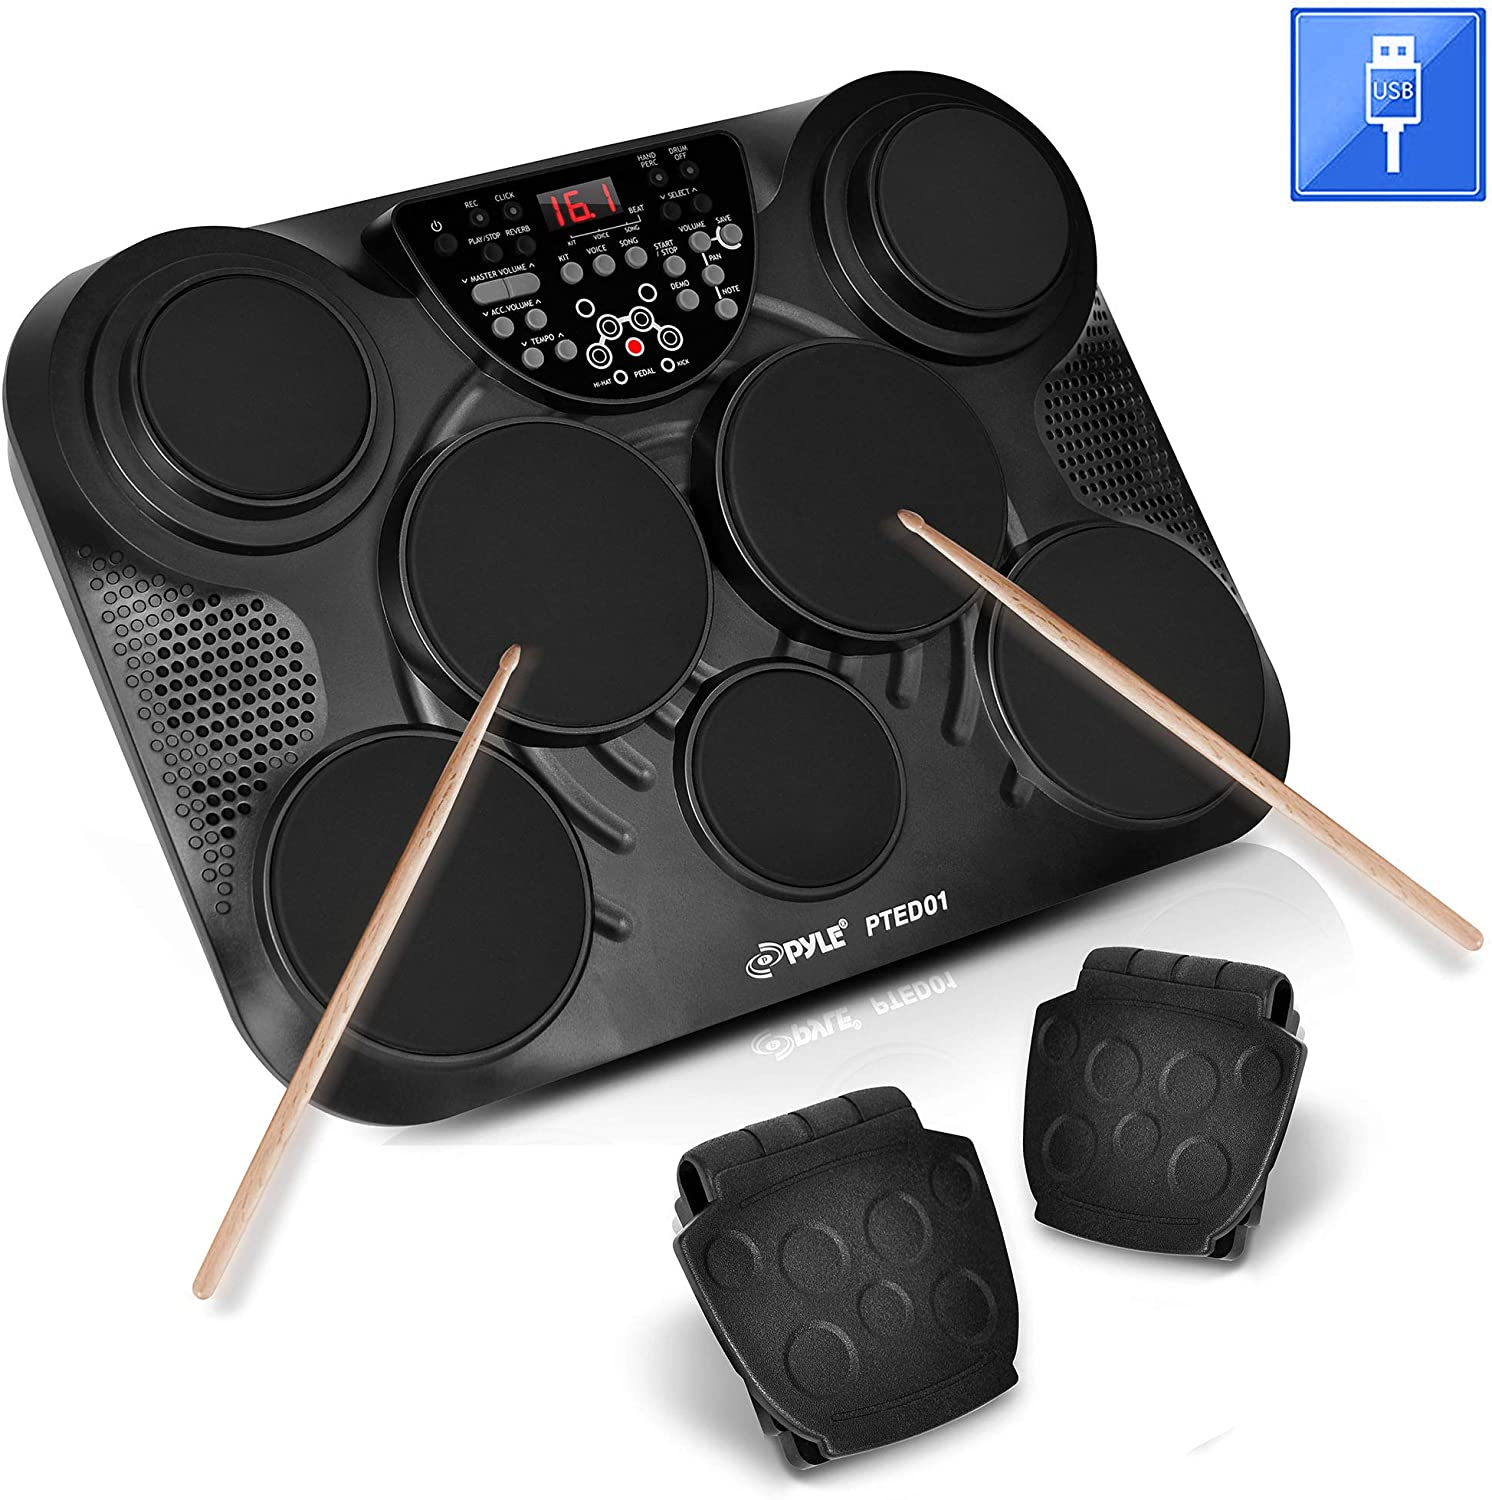 Tabletop Set Machine Mac /& PC Electric Drum Pads,LED Display Pyle-Pro Portable PTED01